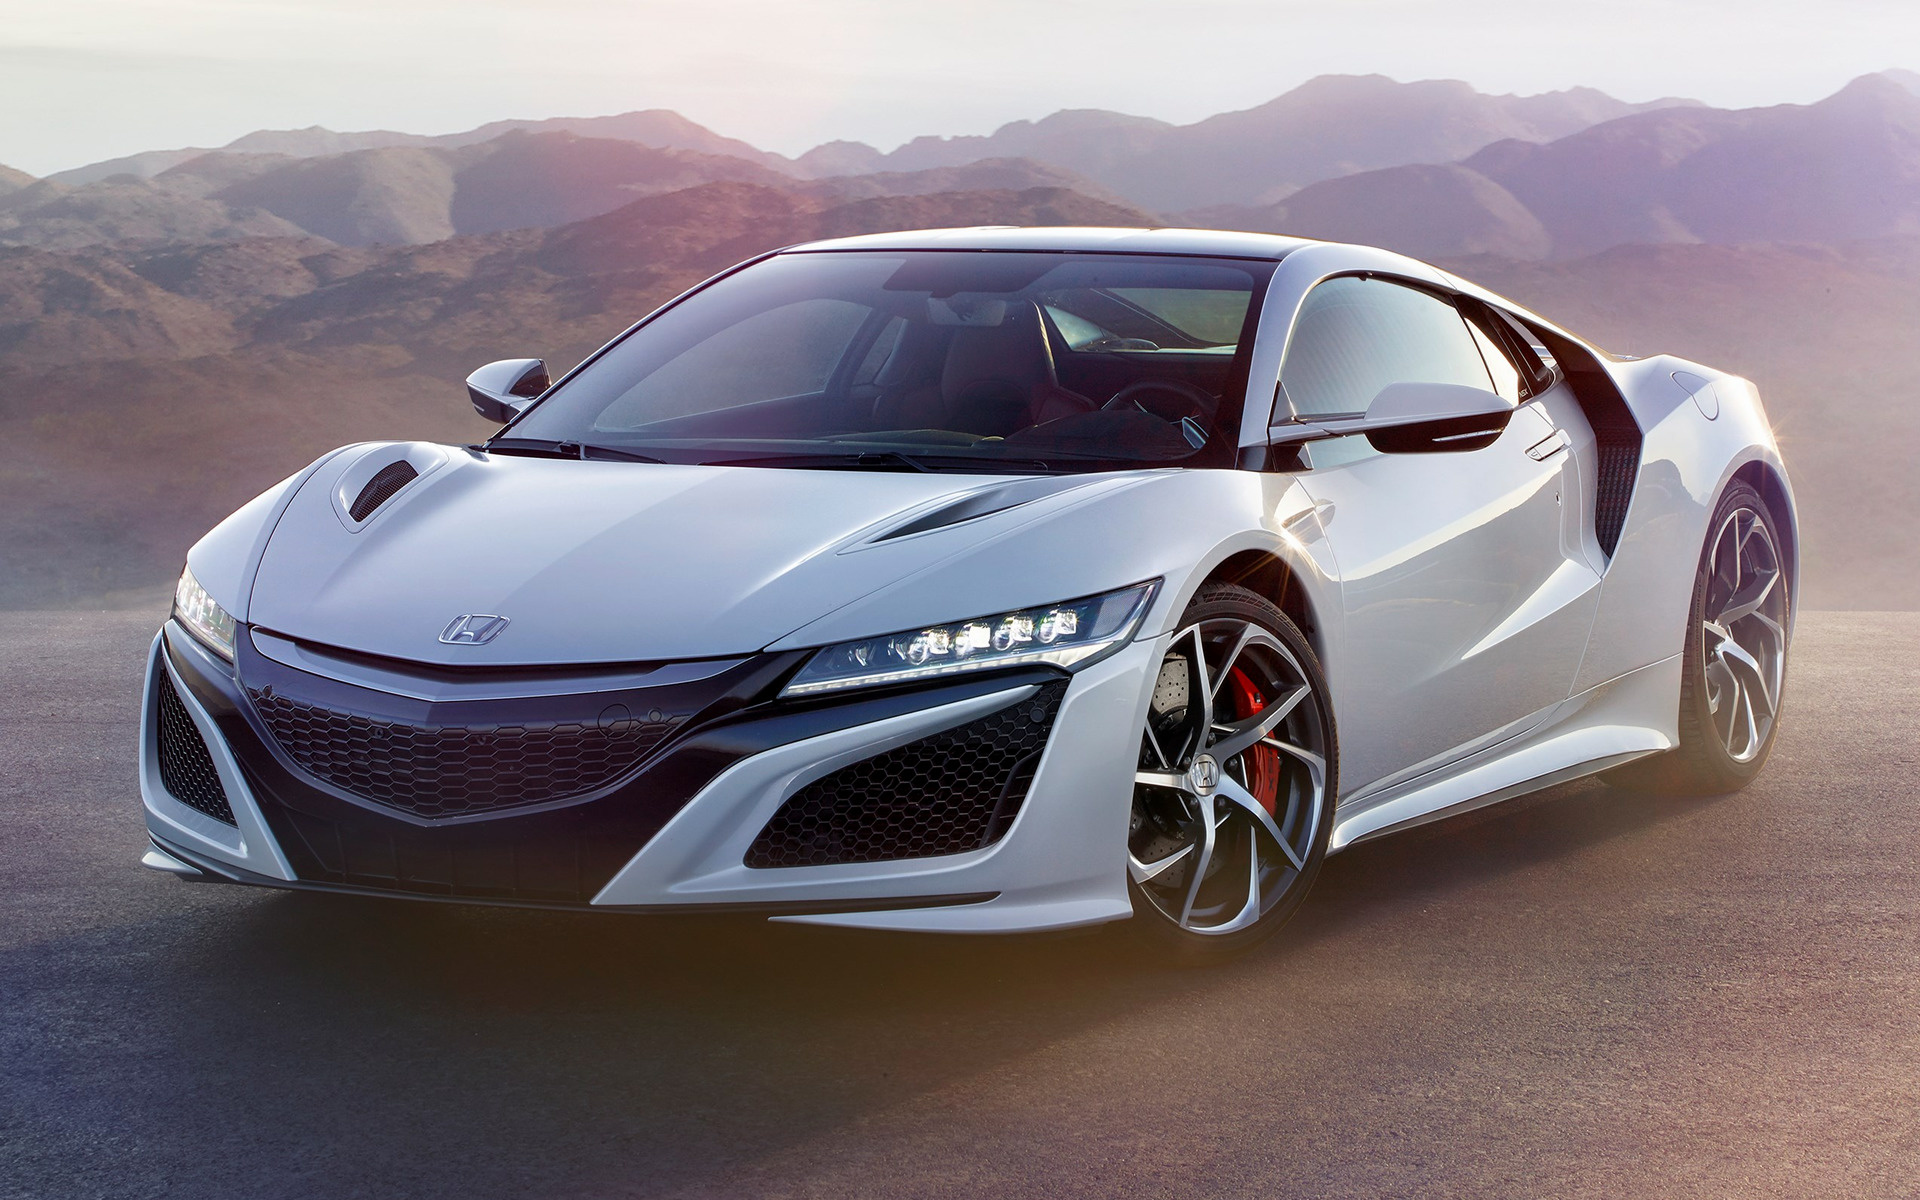 Honda Nsx Car Wallpaper on 2019 Dodge Ram